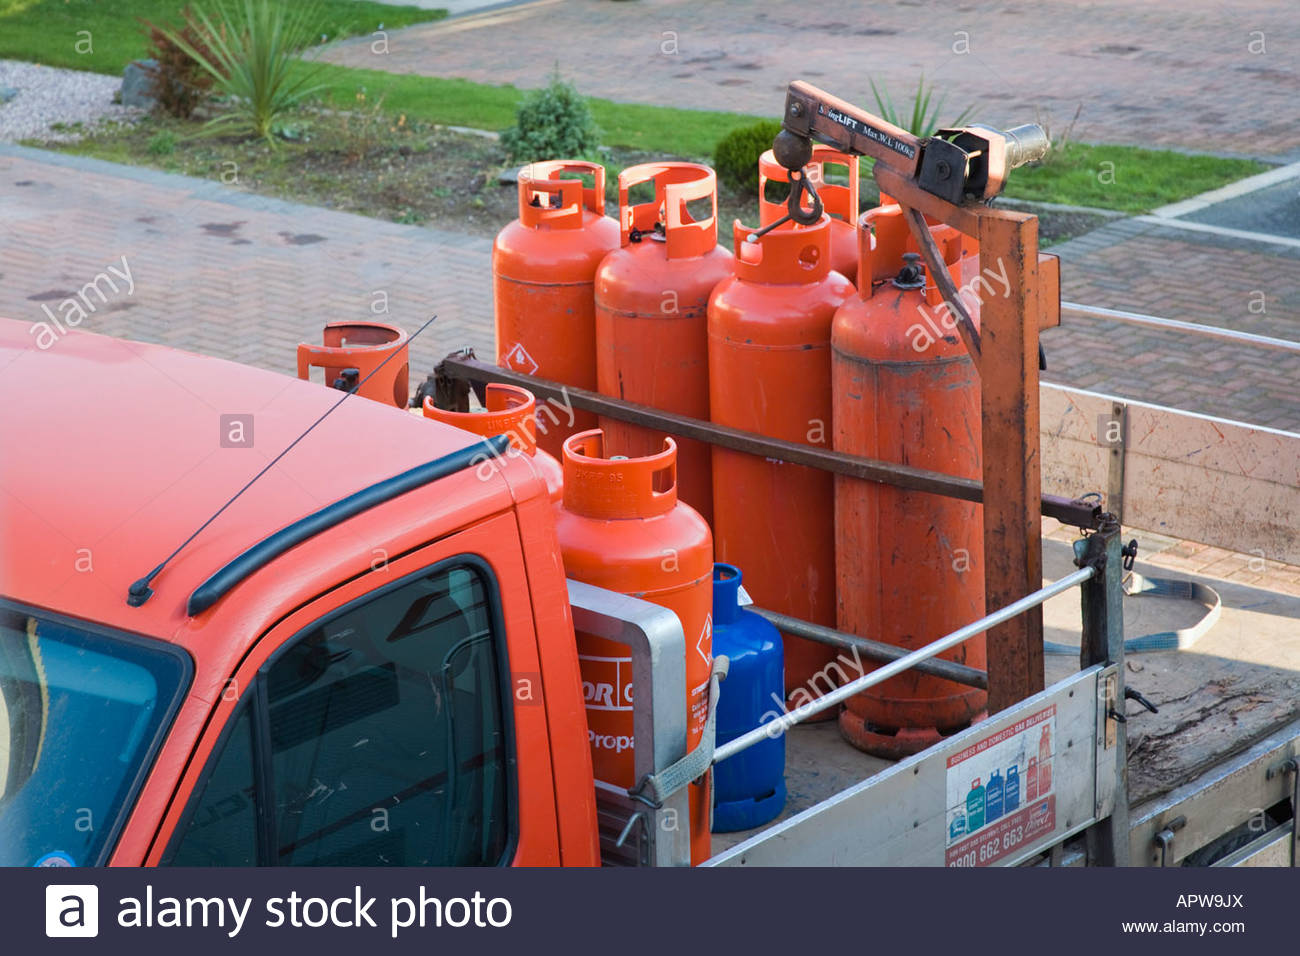 uk-red-domestic-propane-calor-gas-cylinders-being-delivered-on-truck-APW9JX.jpg